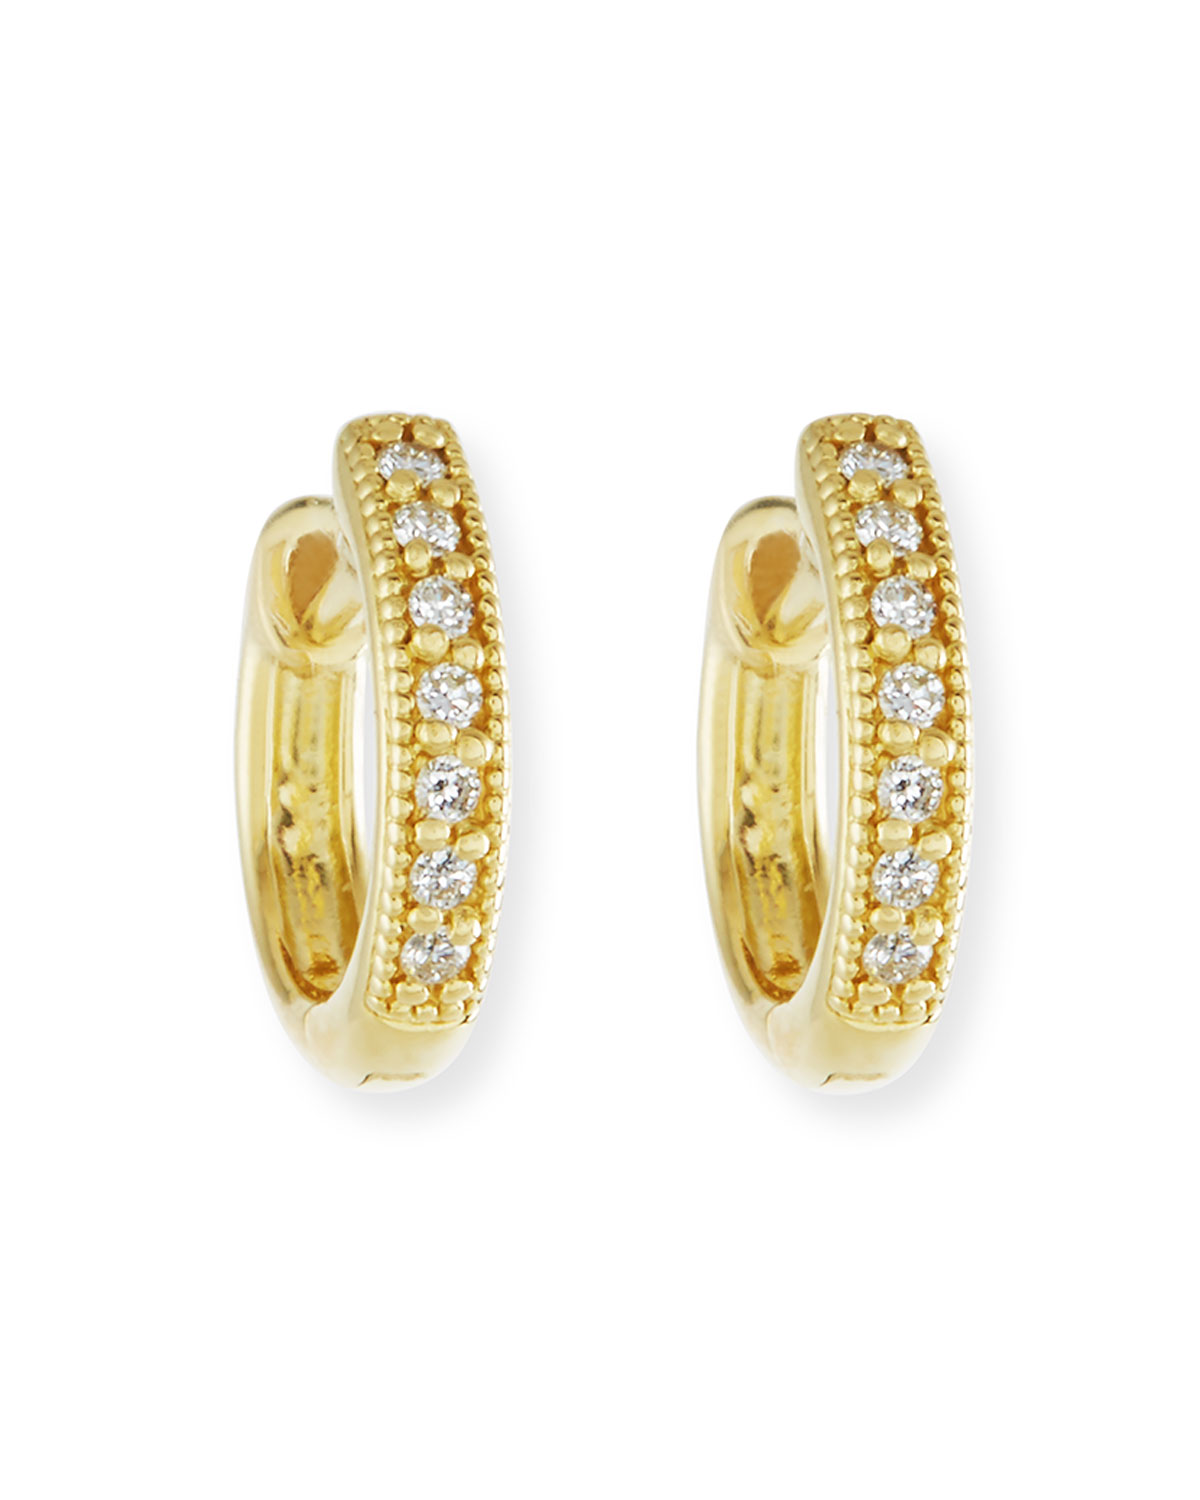 a69528325 Jude Frances Small 18K Gold Hoop Earrings with Diamonds, 11mm ...